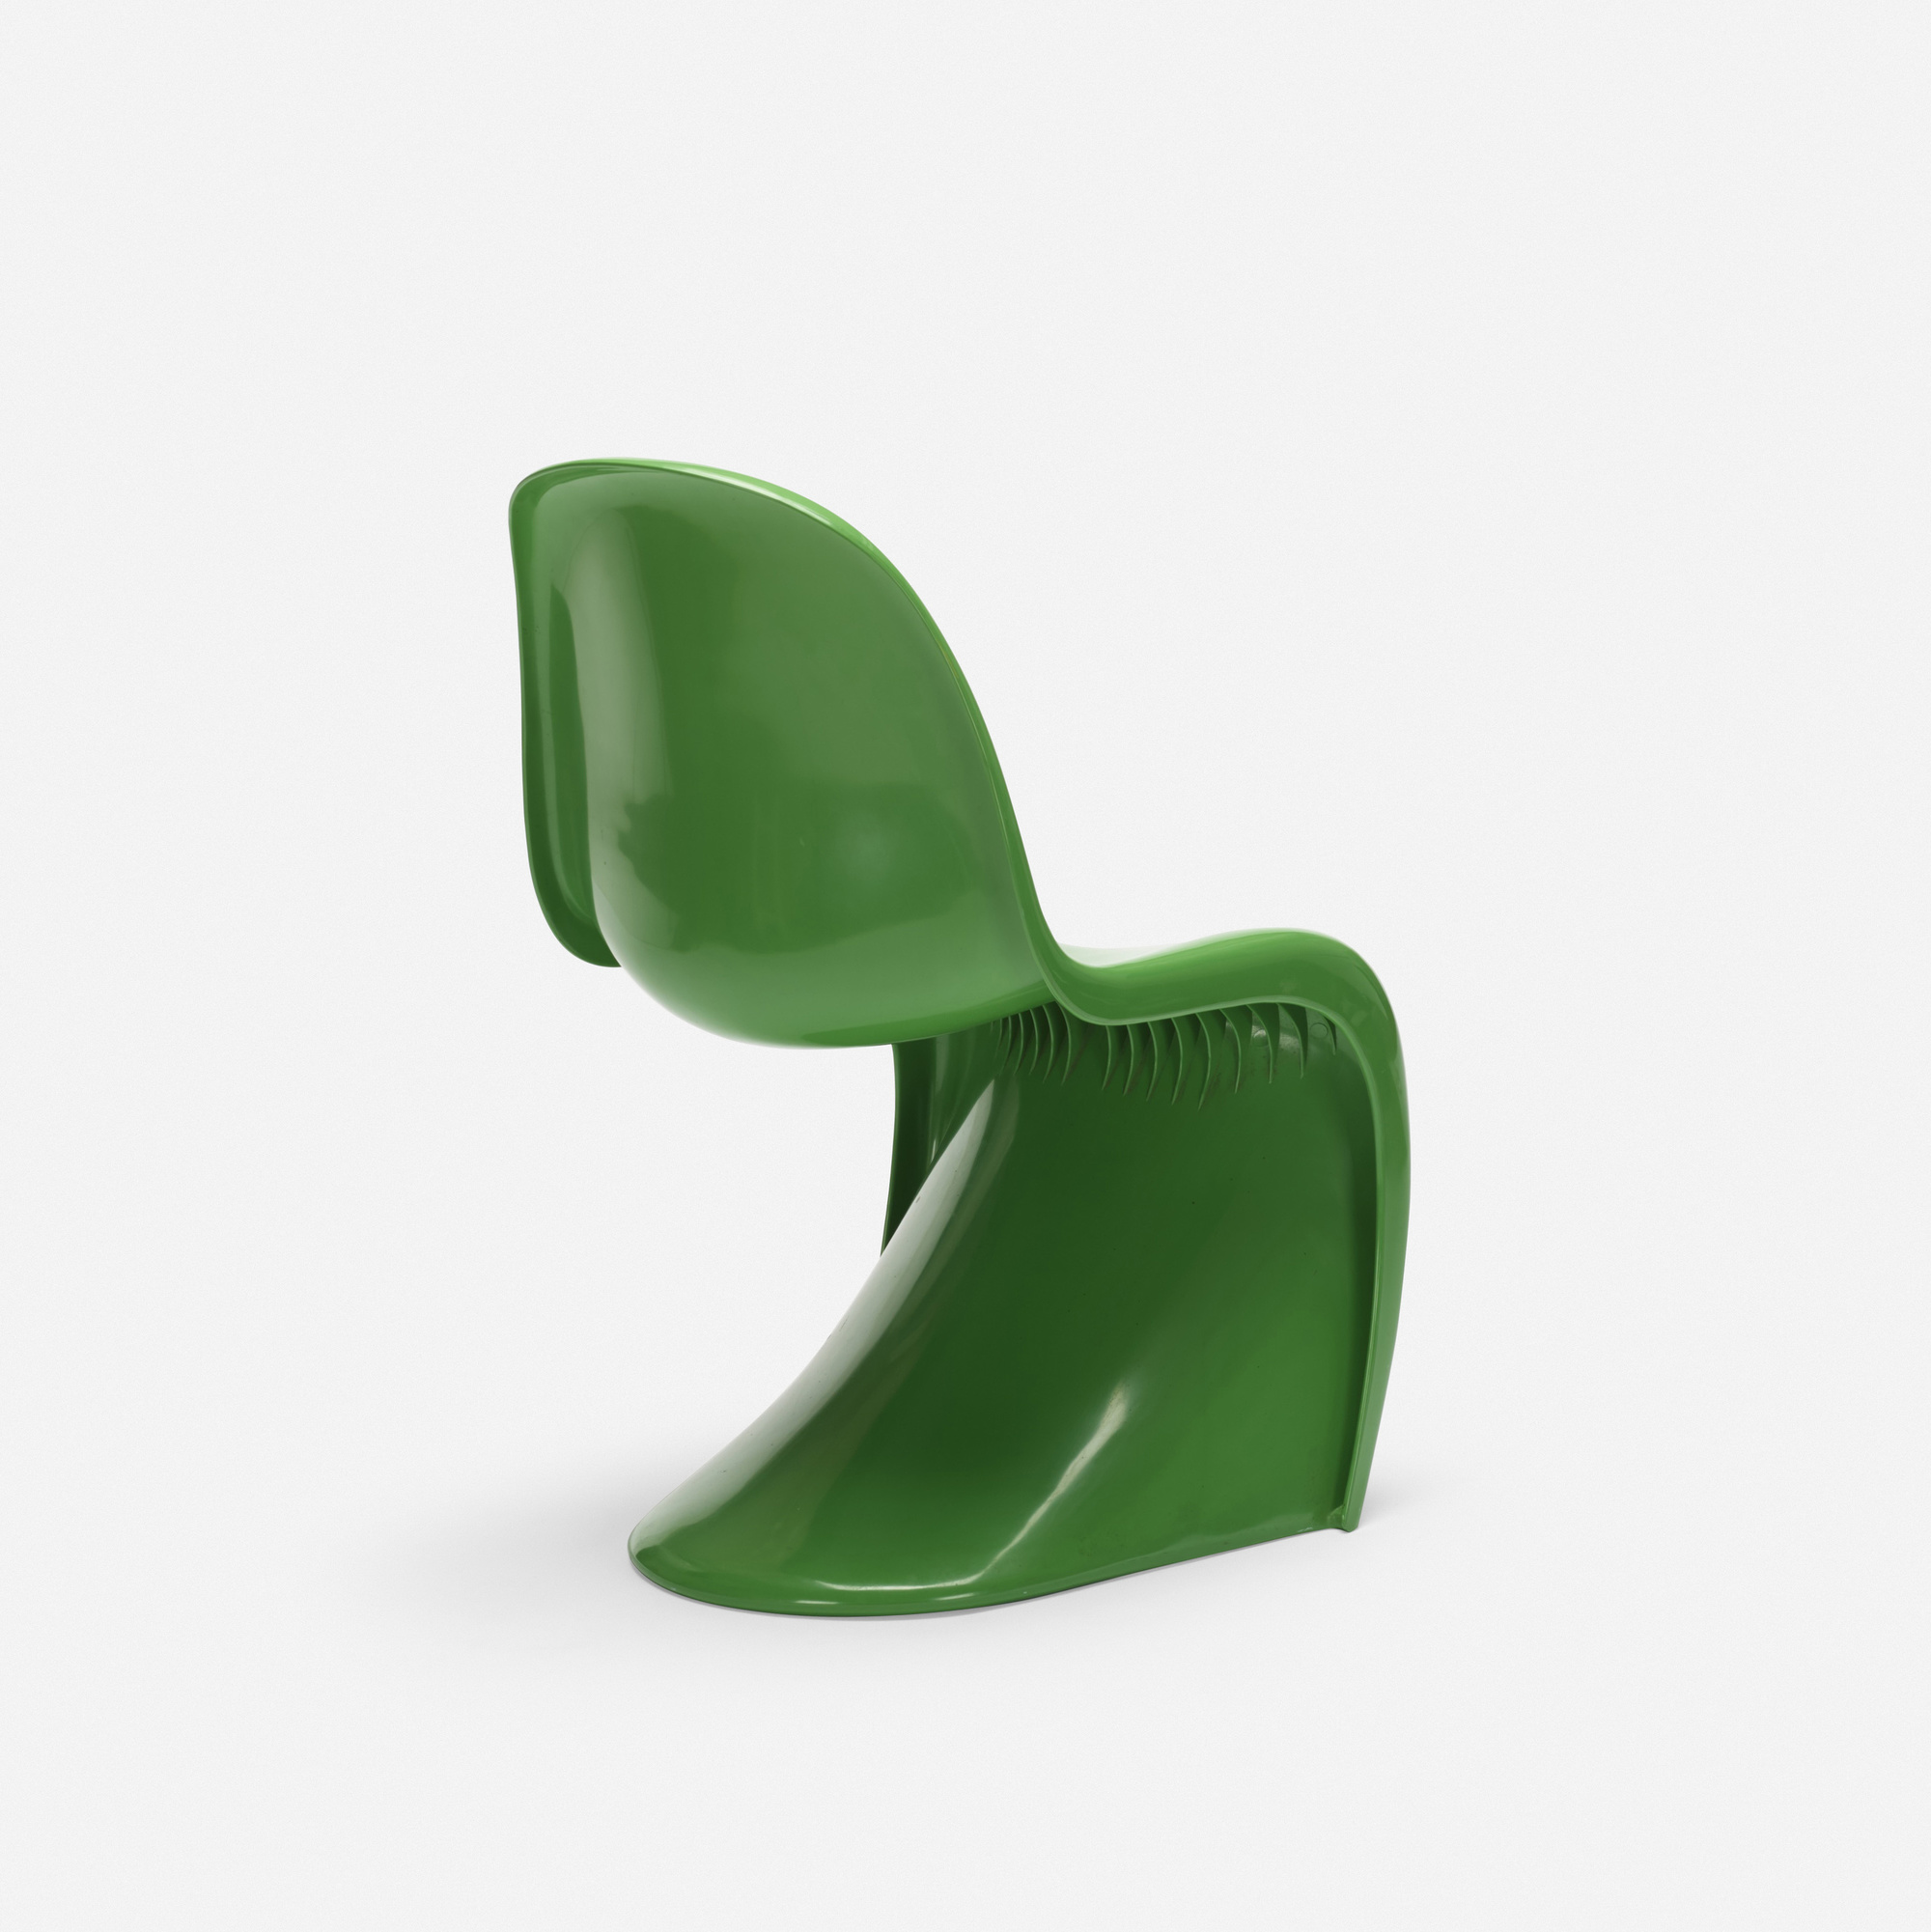 vernon panton chair target counter chairs 596 verner mass modern day 2 10 august of 4